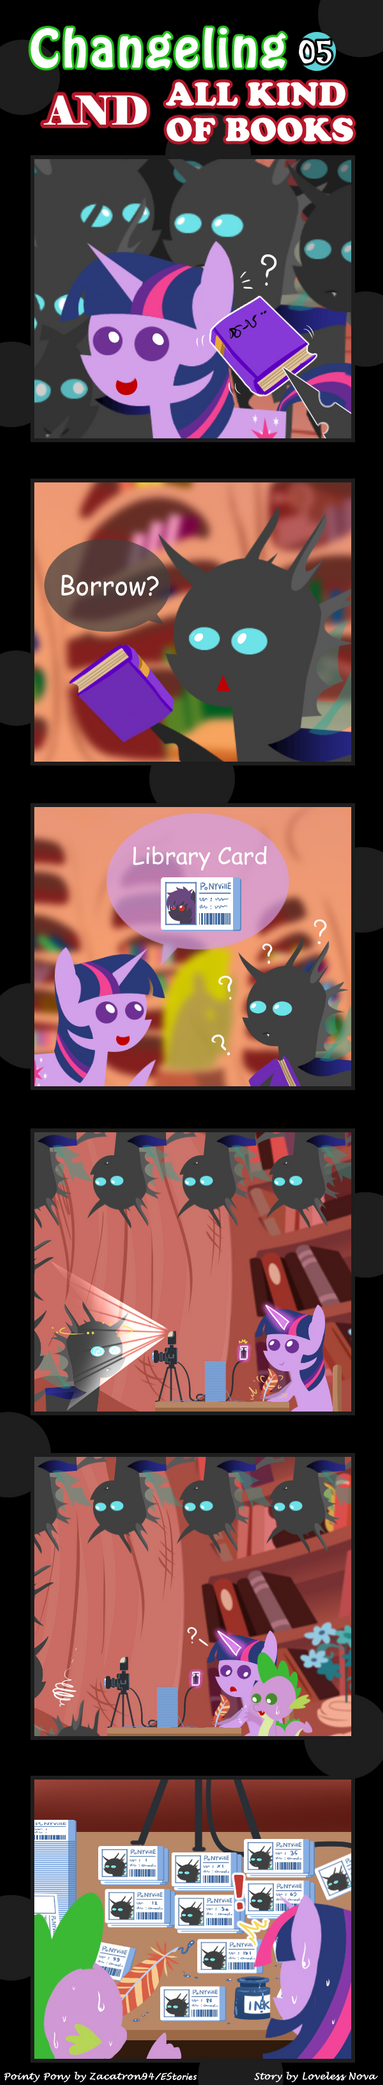 Changeling And All Kind Of Books 05 by vavacung